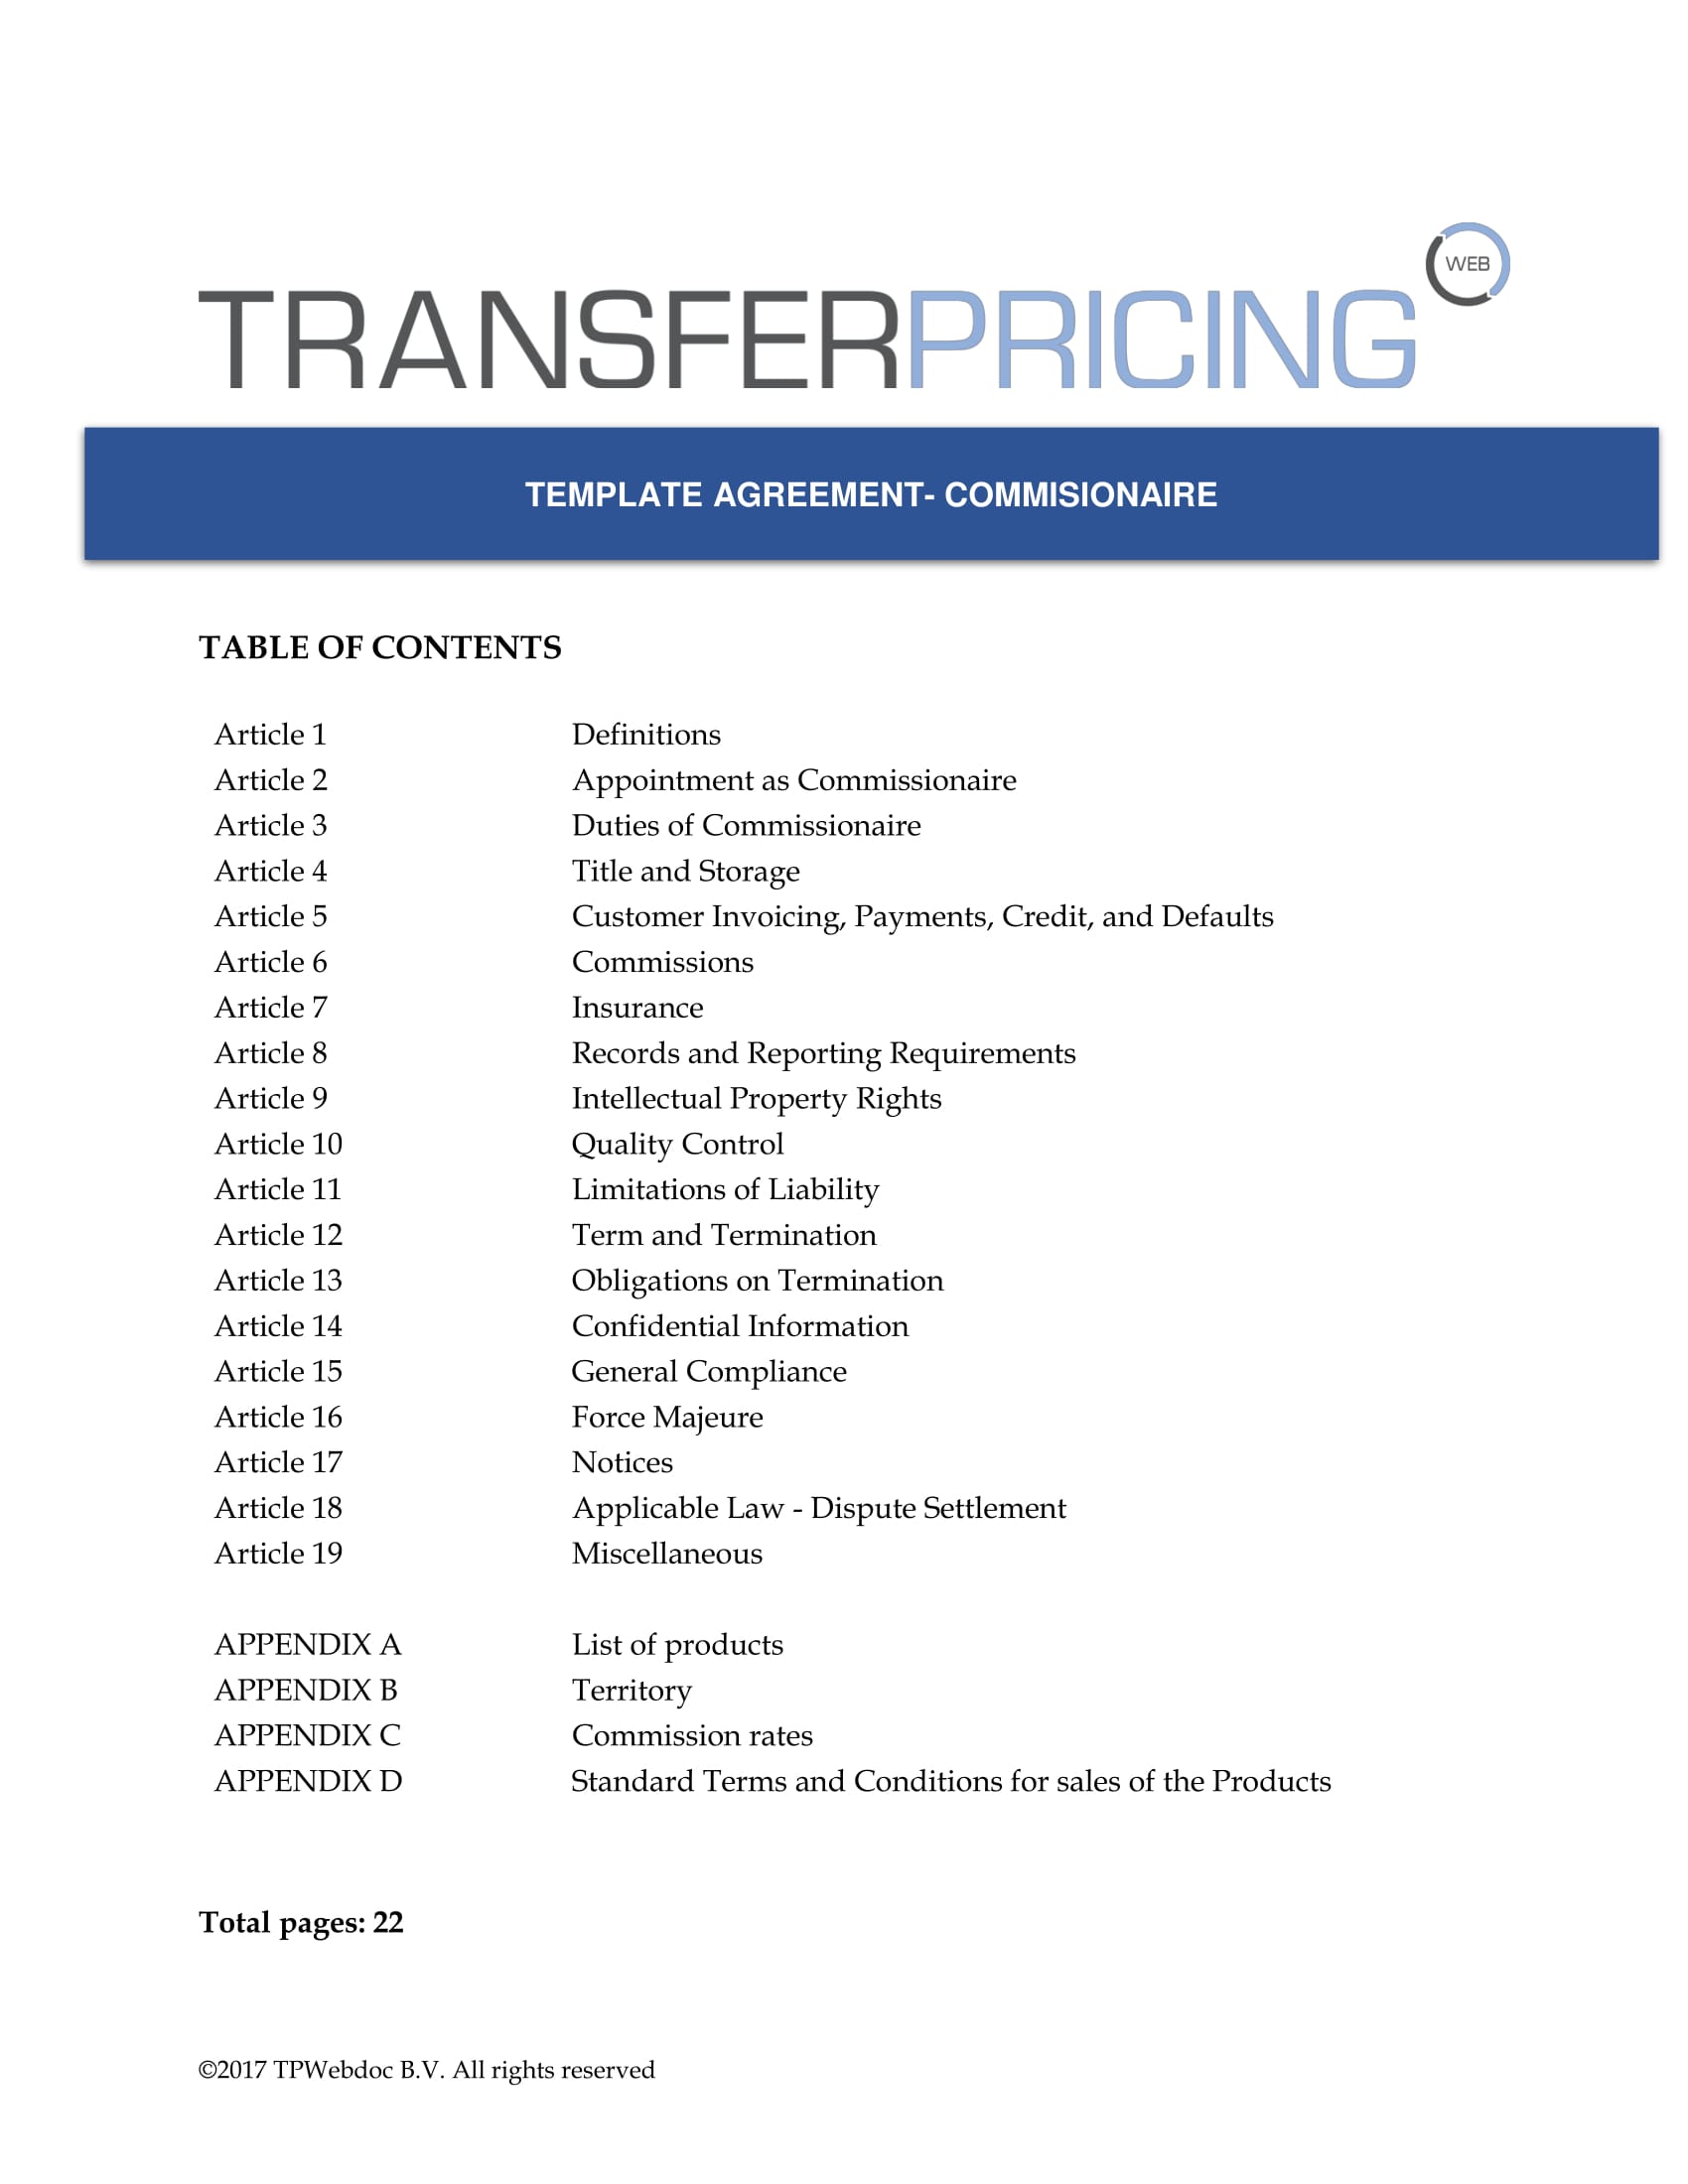 Missionaire Agreement Template Transfer Pricing Web